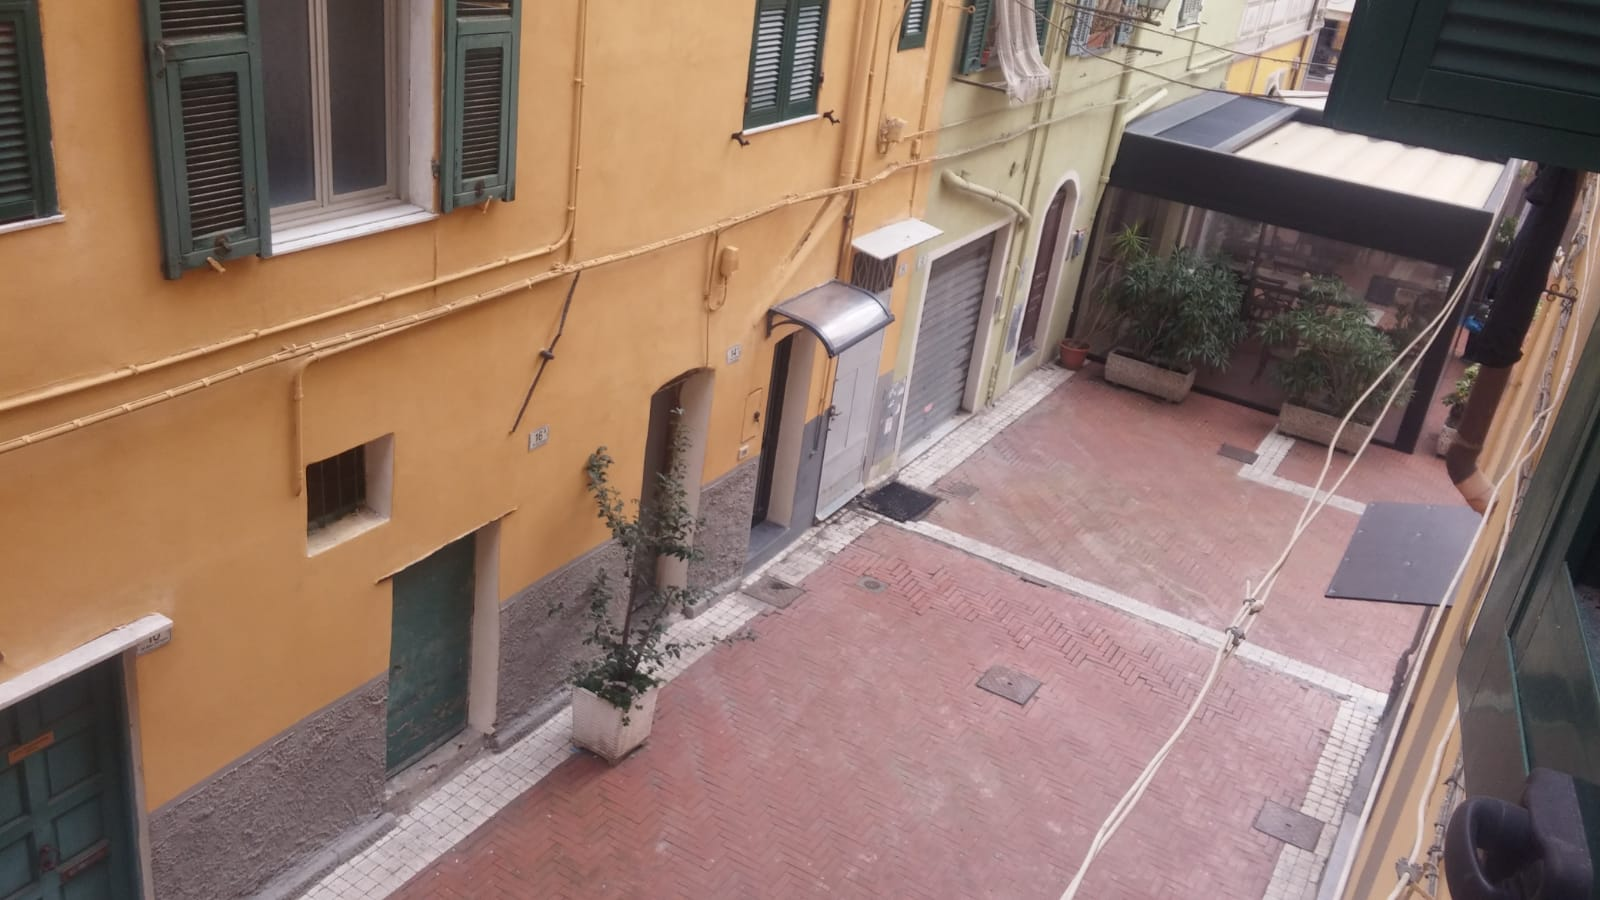 Two-room apartment in the heart of Imperia Oneglia